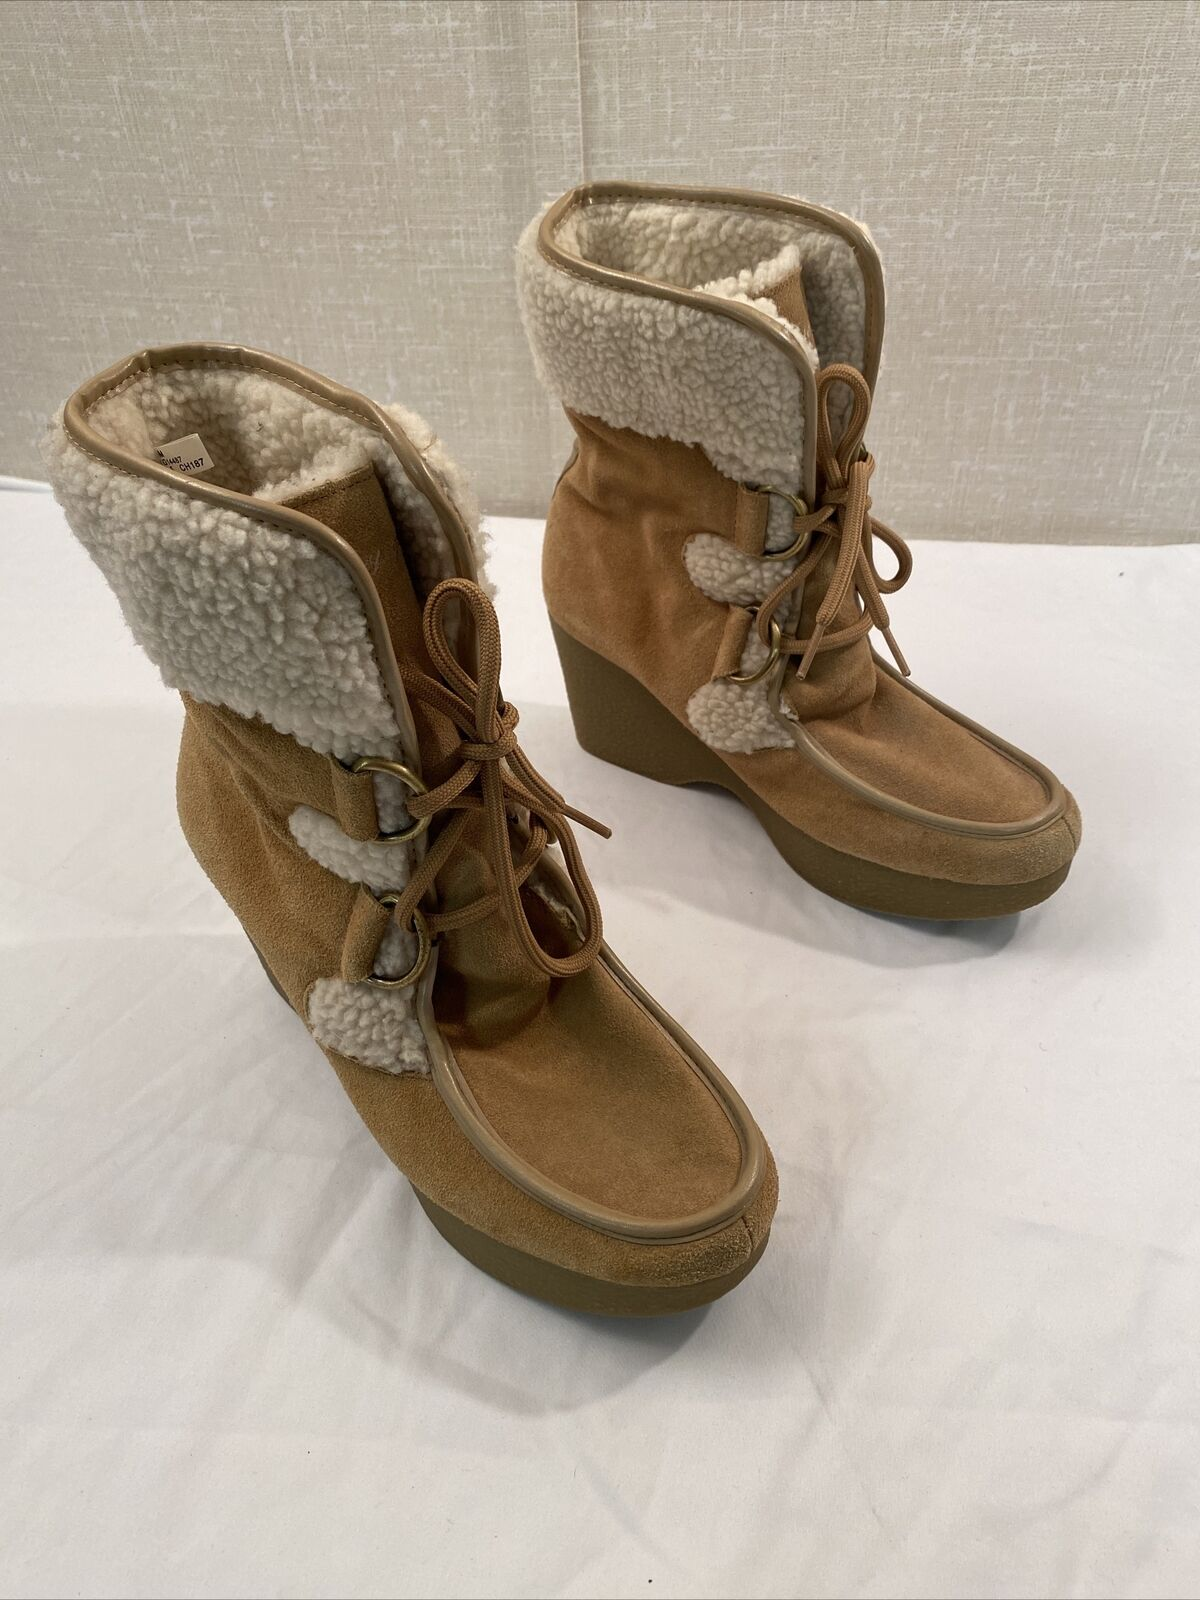 tommy hilfiger Brown boots women 8M - image 4